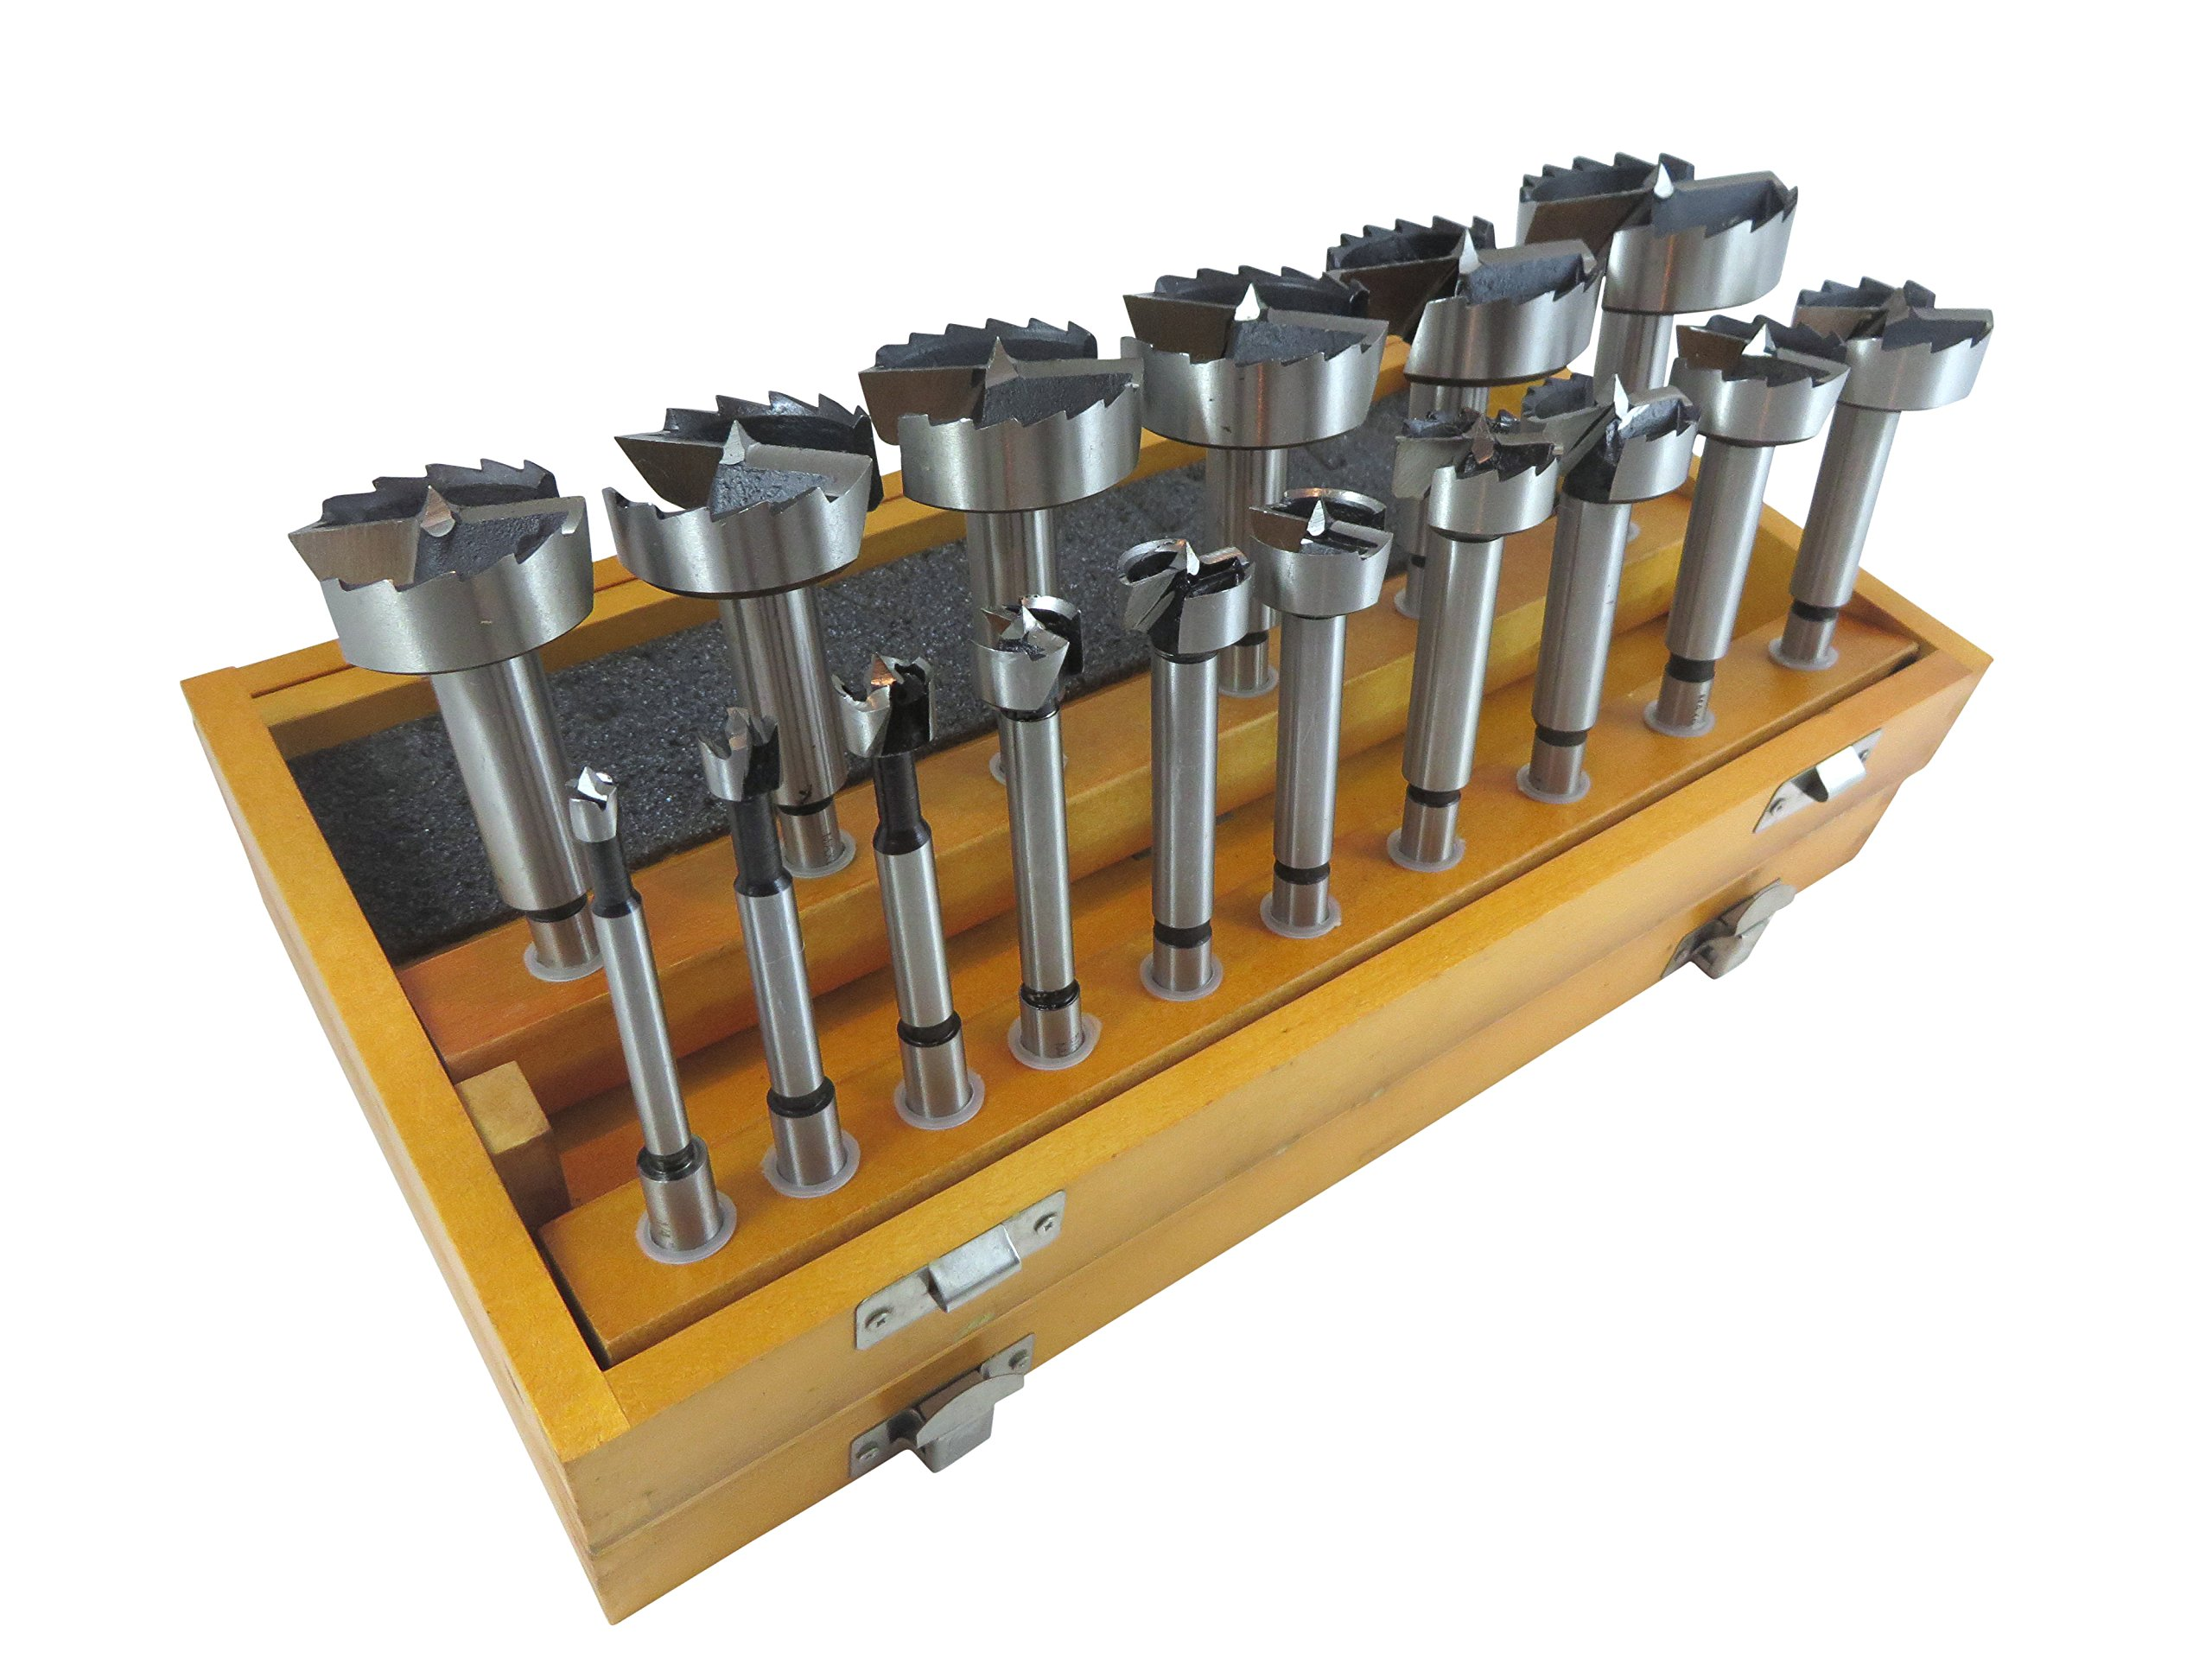 16 Piece Forstner Drill Bit Set with Bits from 1/4'' to 2-1/8'' by 1/8ths Hardened Carbon Steel in Wooden Storage Box 402005 by Taytools